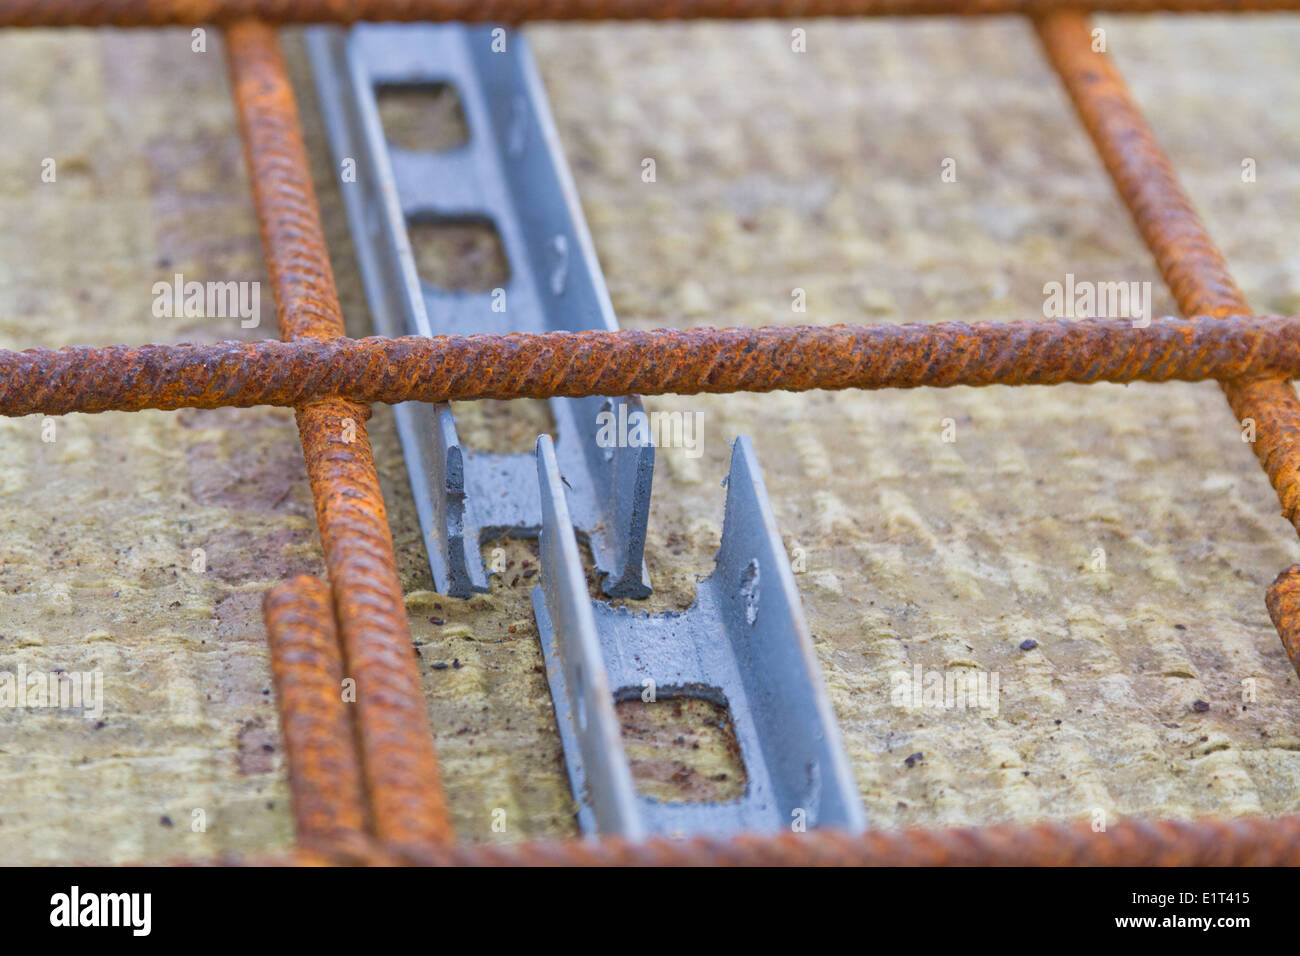 Plastic spacers used with reinforcement for concrete floors and beams - Stock Image